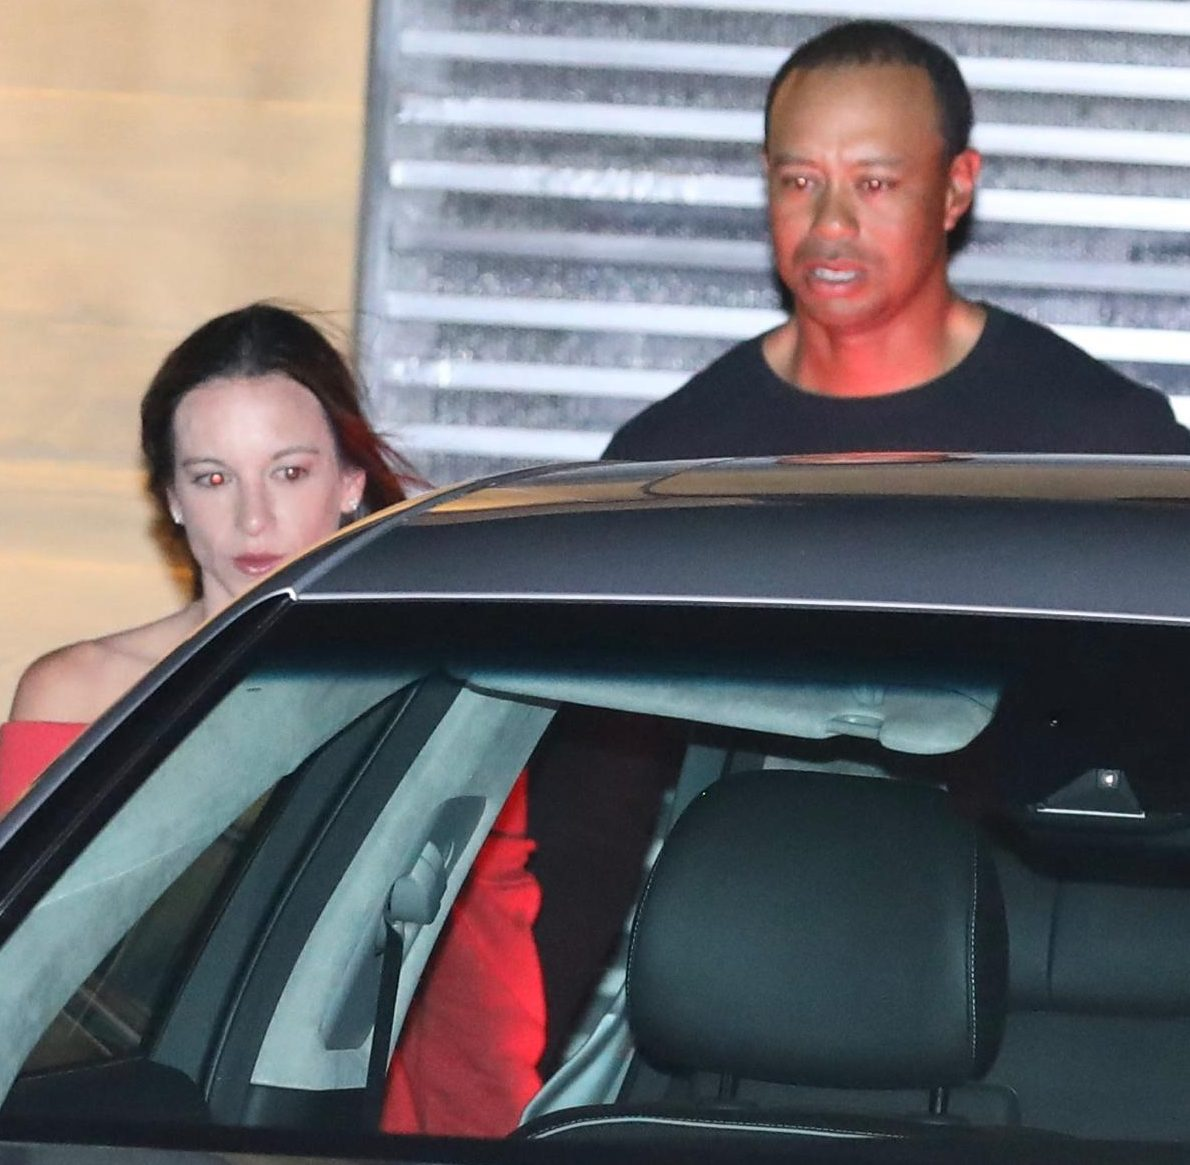 Tiger Woods and girlfriend Erica Harman leave the Nobu in Malibu